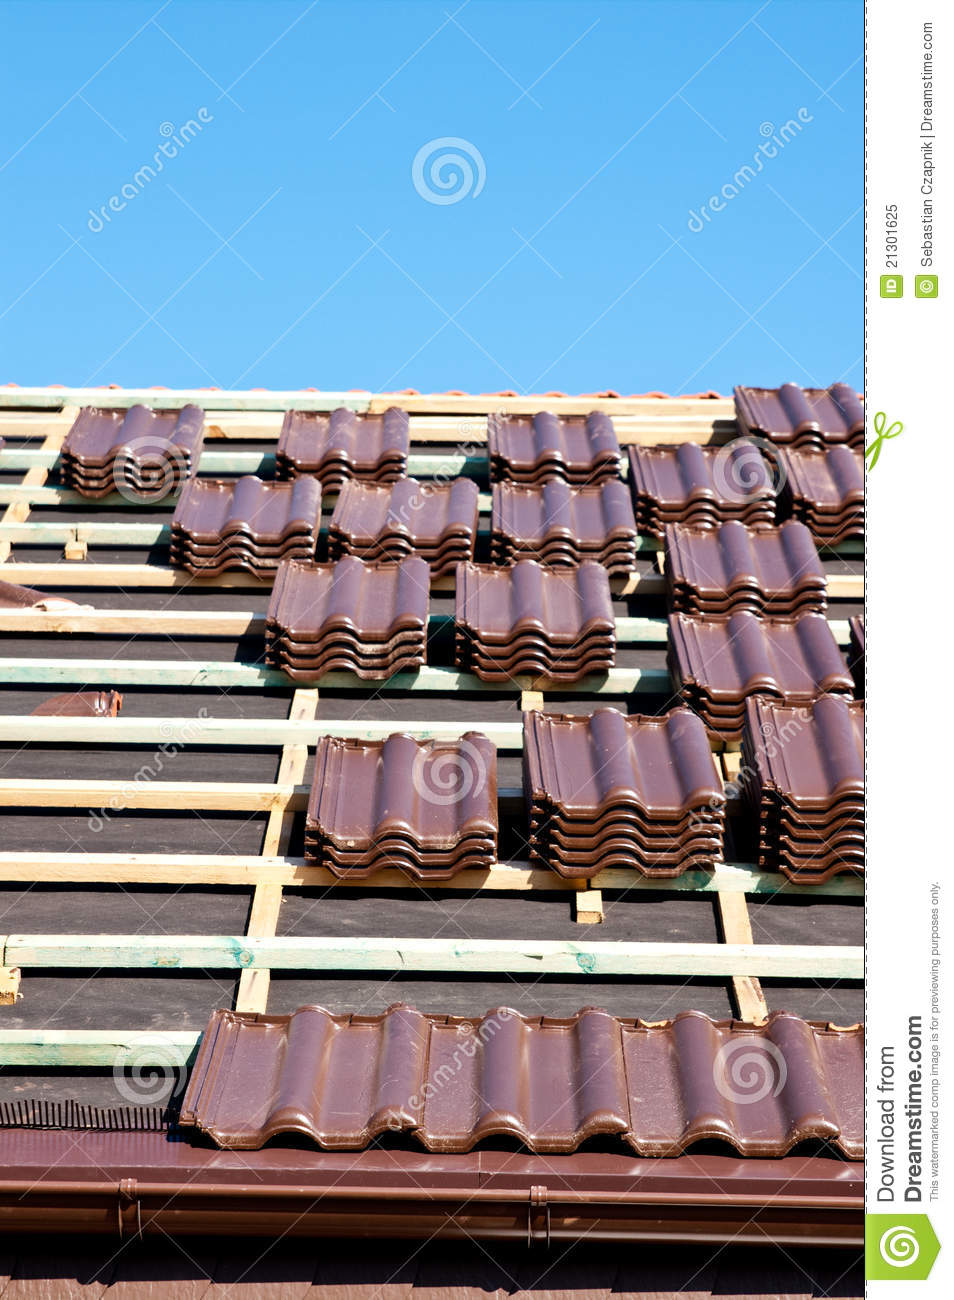 Laying Tiles On Roof Royalty Free Stock Photo Image